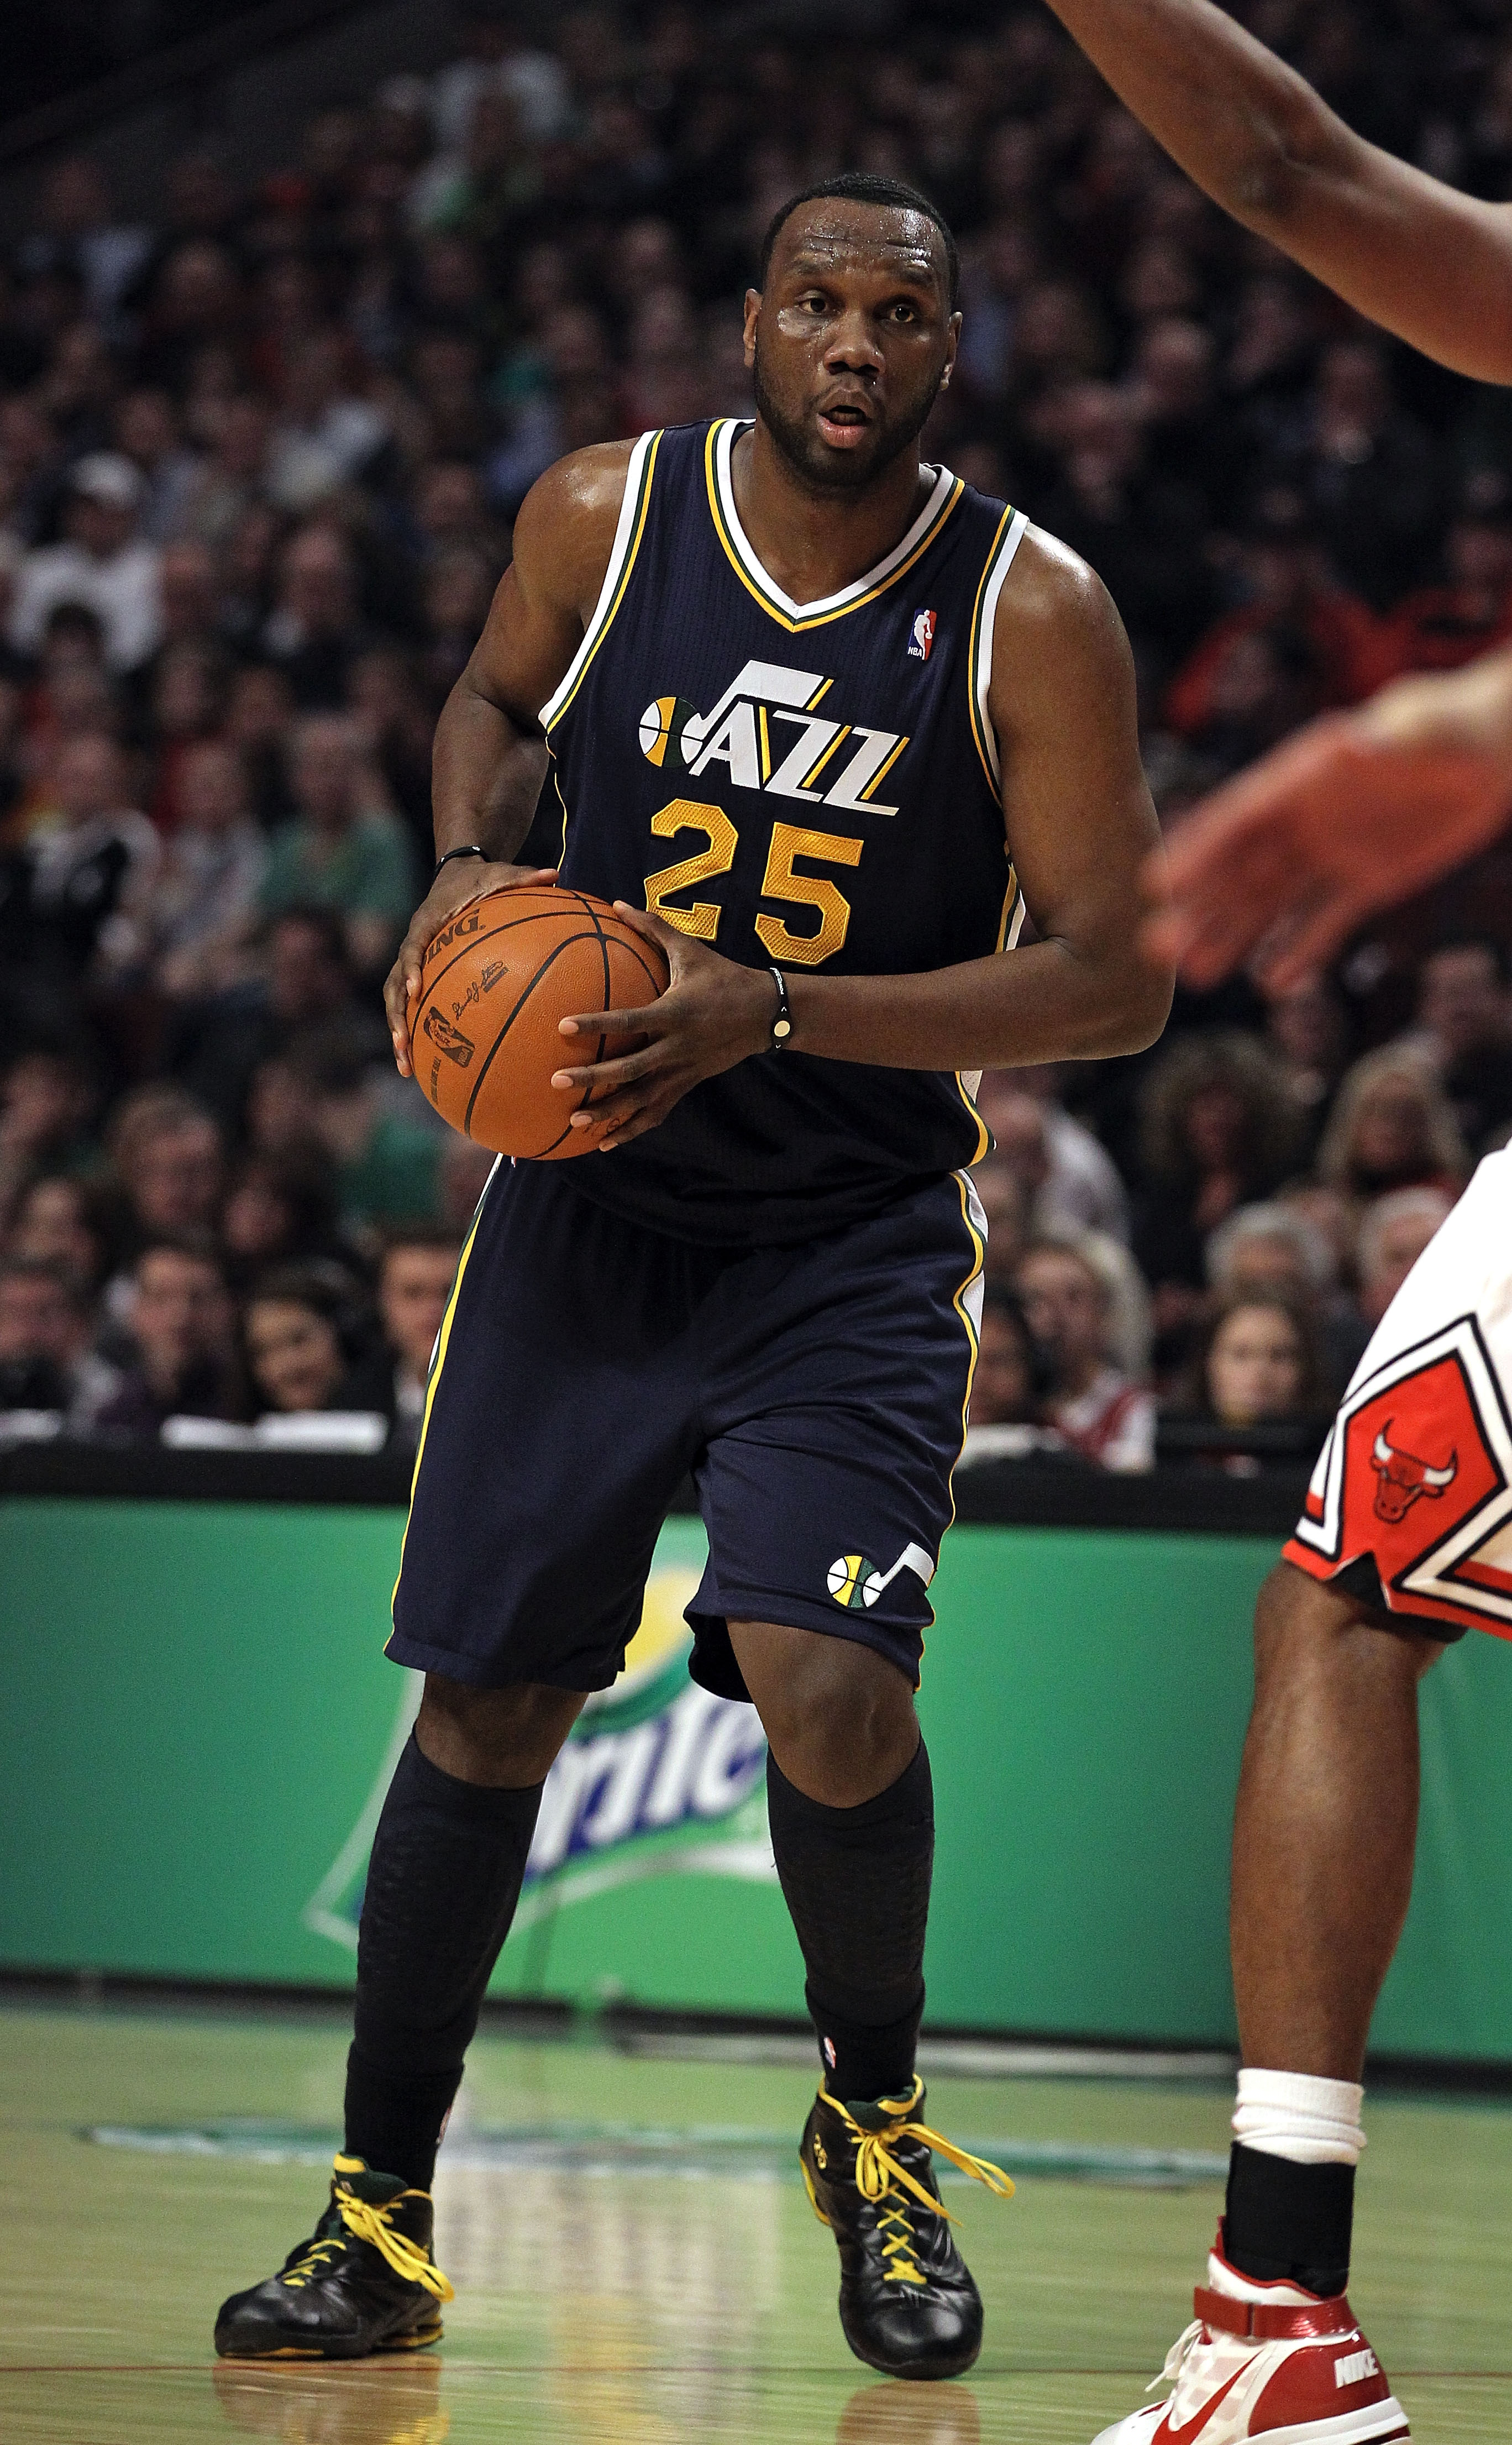 CHICAGO, IL - MARCH 12: Al Jefferson #25 of the Utah Jazz looks to against the Chicago Bulls at the United Center on March 12, 2011 in Chicago, Illinois. The Bulls defeated the Jazz 118-100. NOTE TO USER: User expressly acknowledges and agrees that, by do